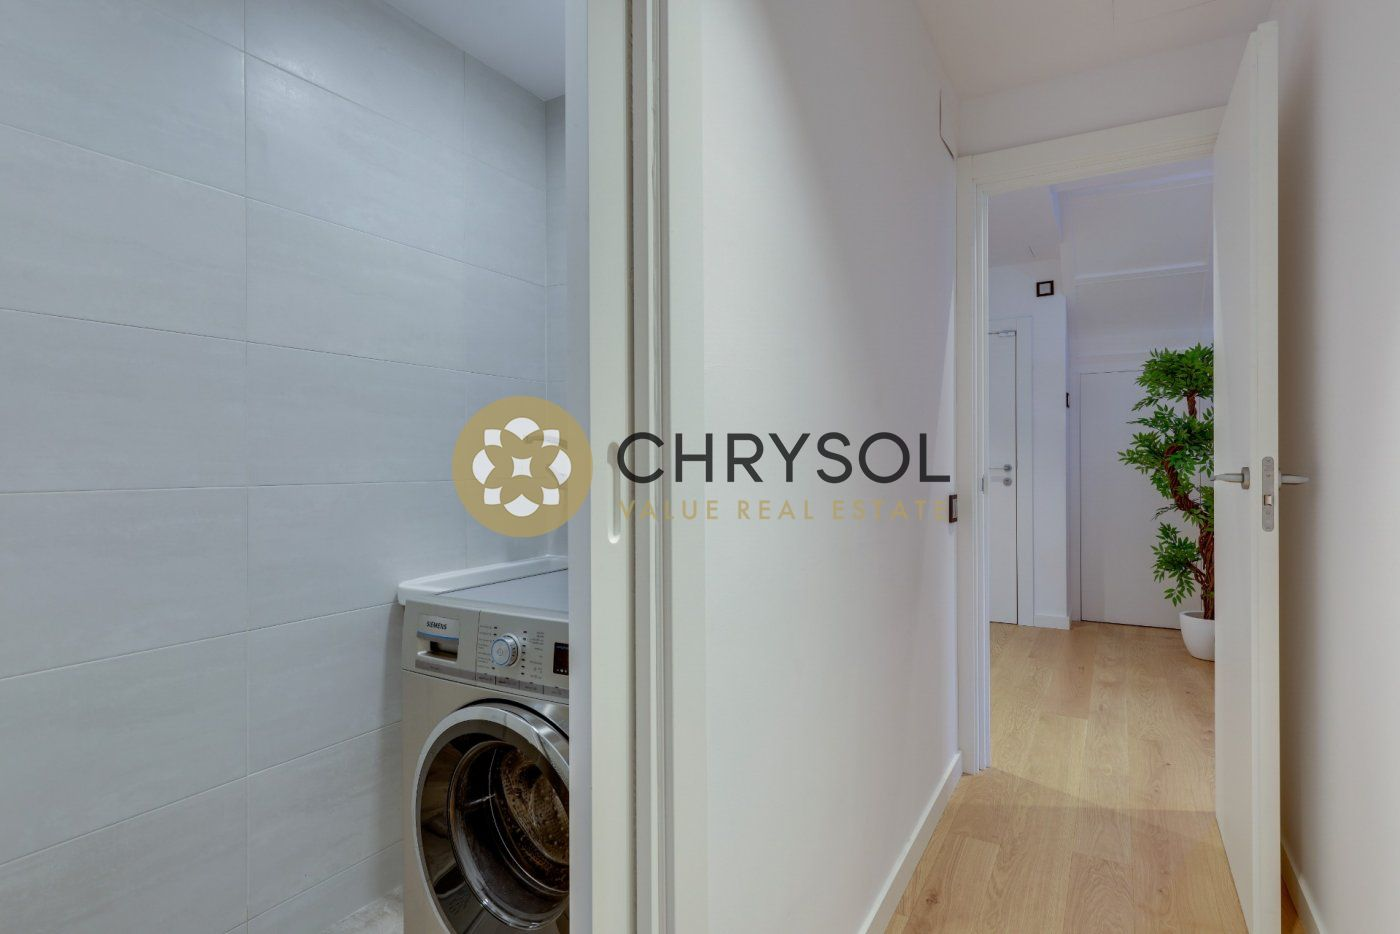 Photogallery - 38 - Chrysol Value